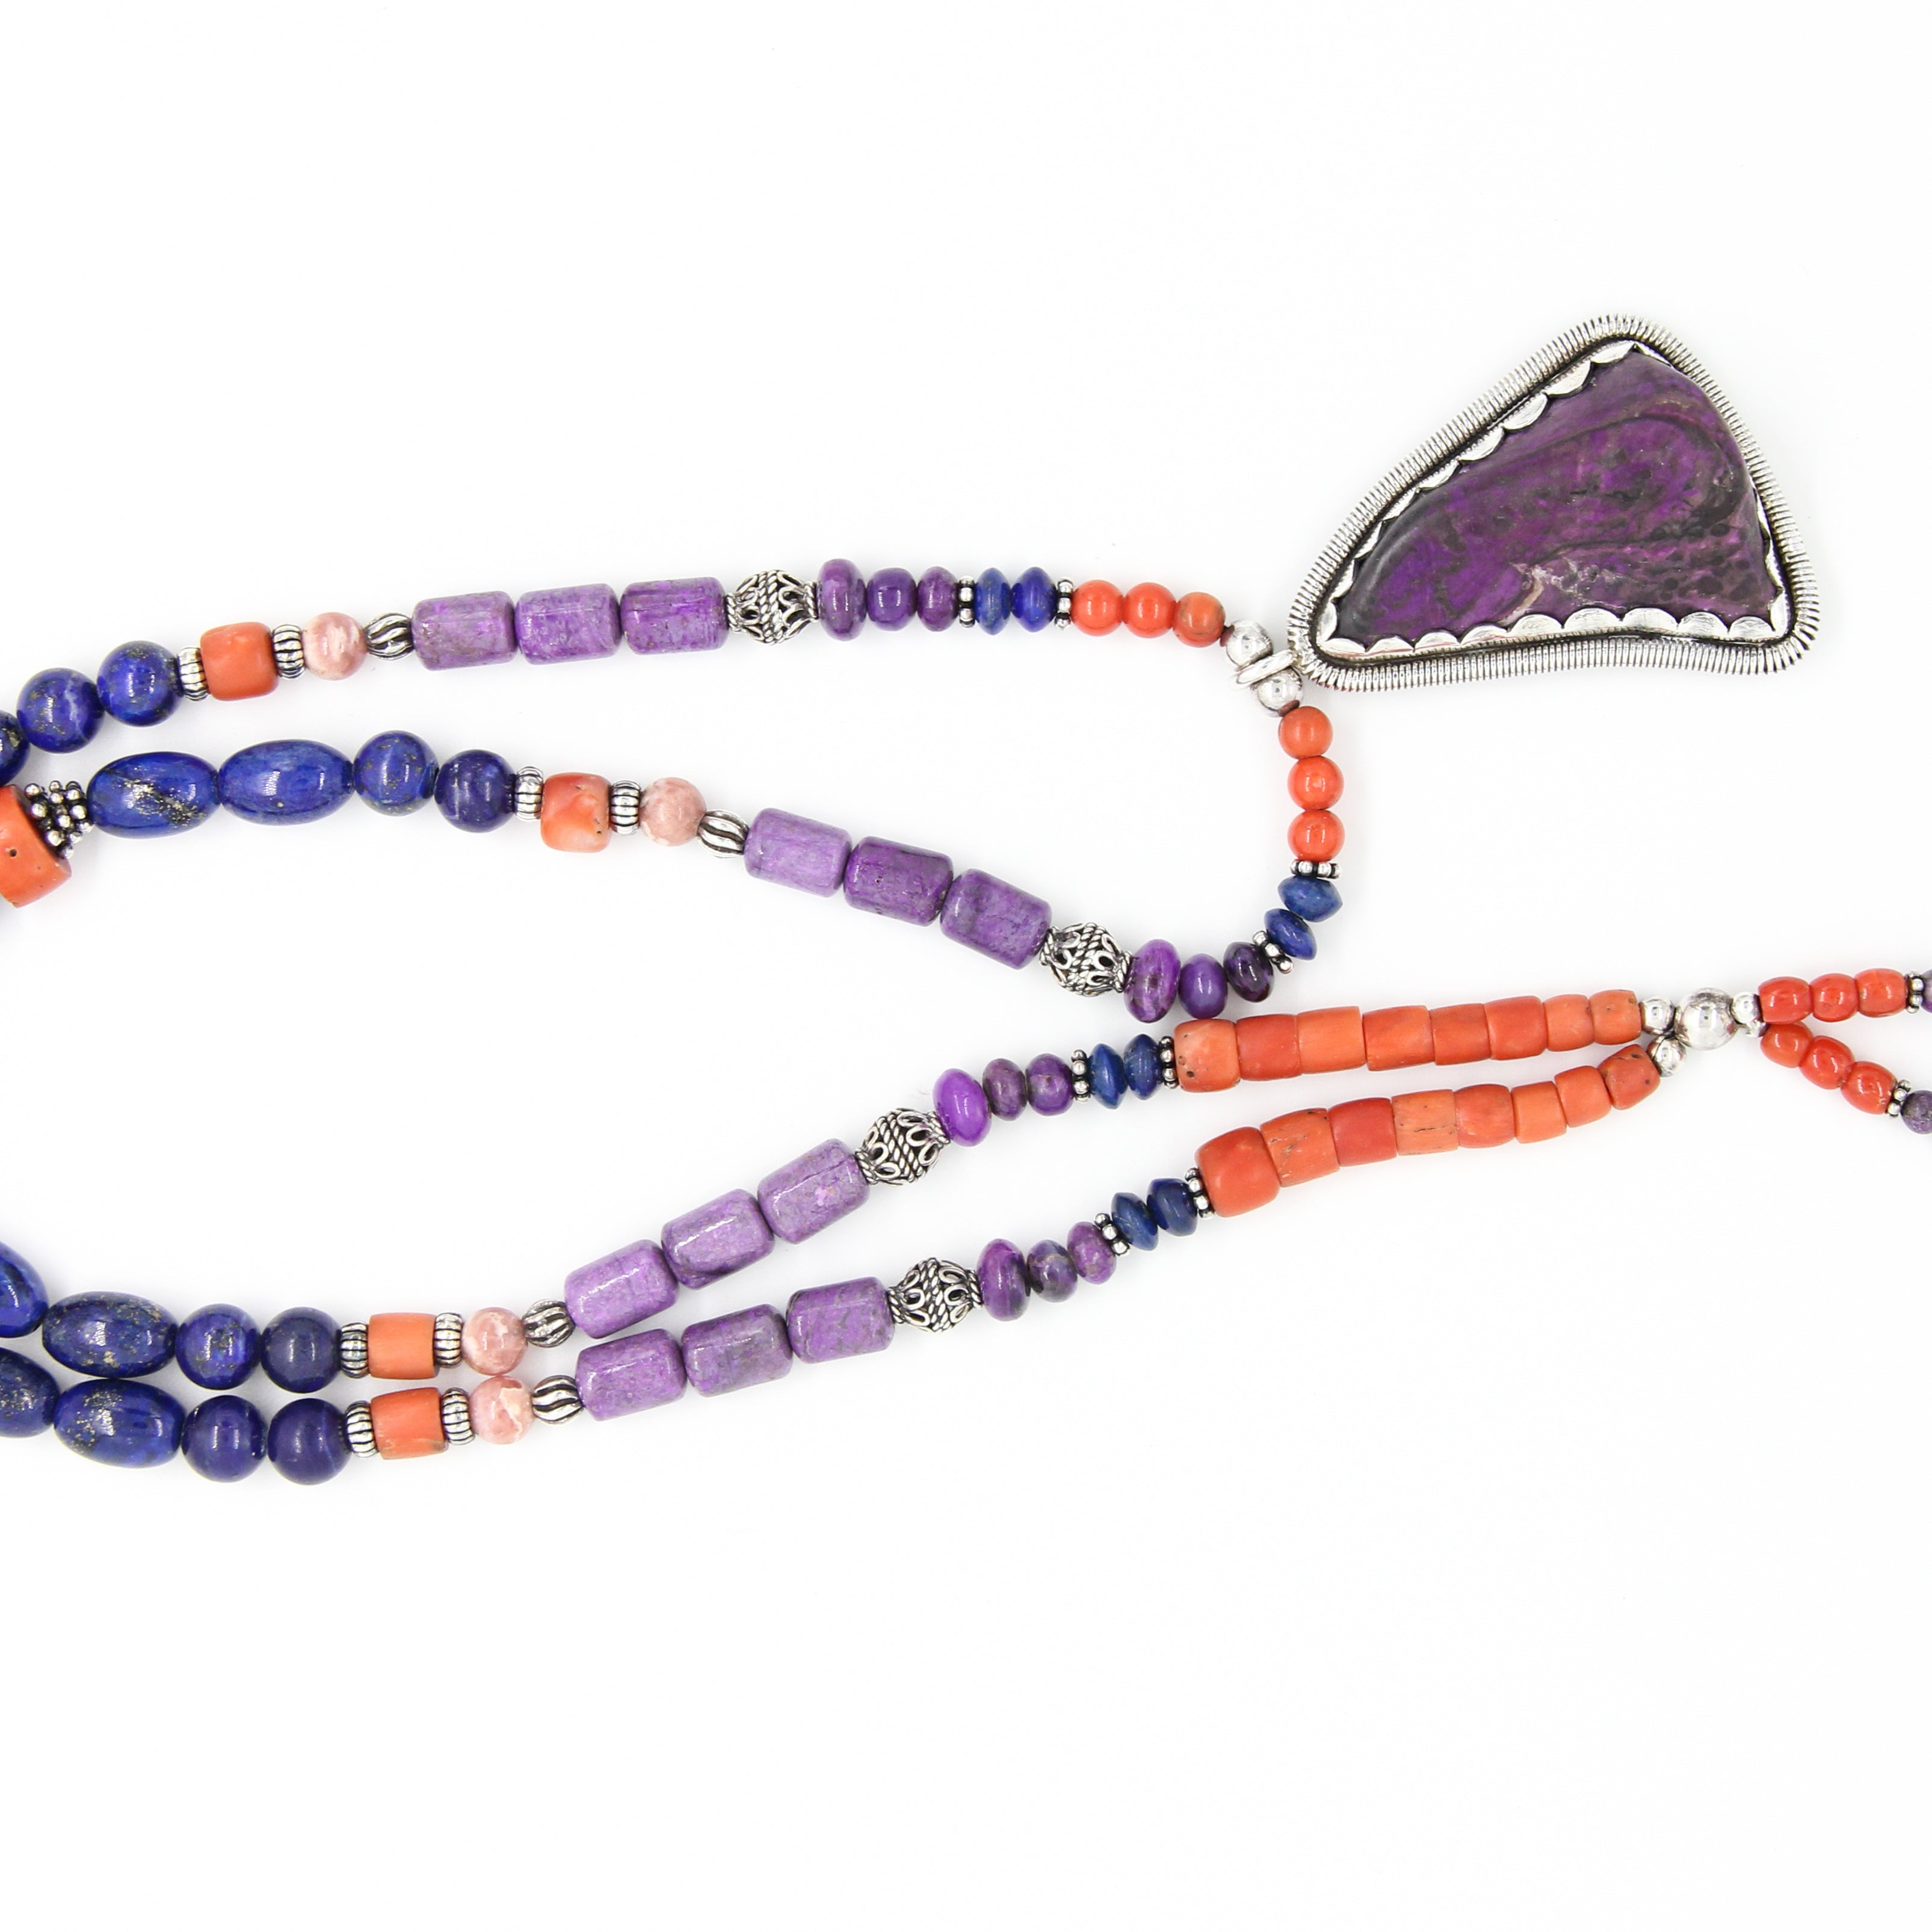 Sugilite Necklace with Red Coral, Lapis Lazuli, Rhodochrosite, Kyanite and Silver Beads